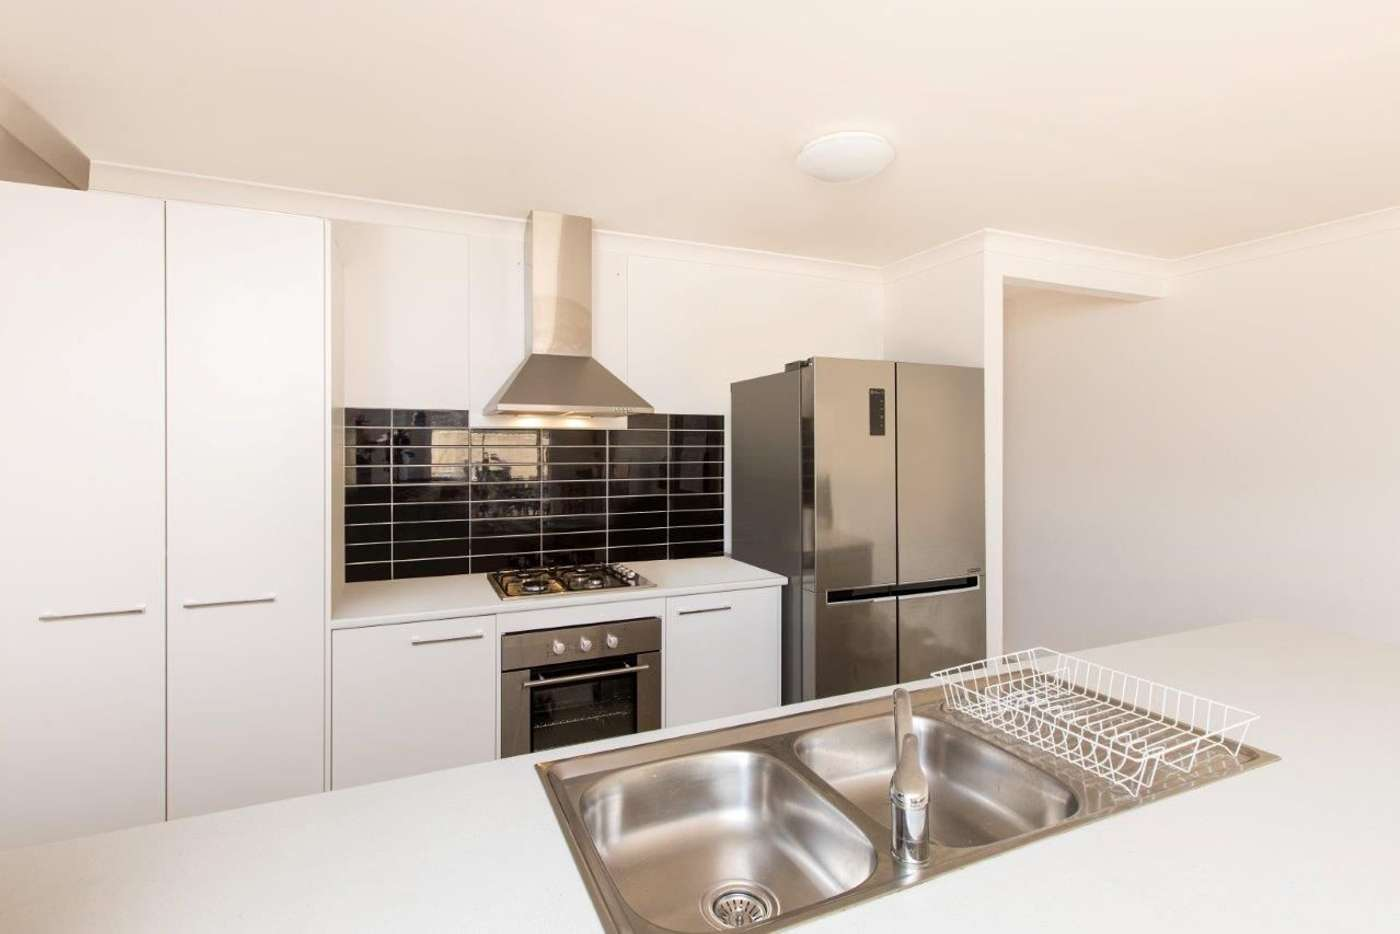 Fifth view of Homely house listing, 17 Midtown Drive, Mildura VIC 3500